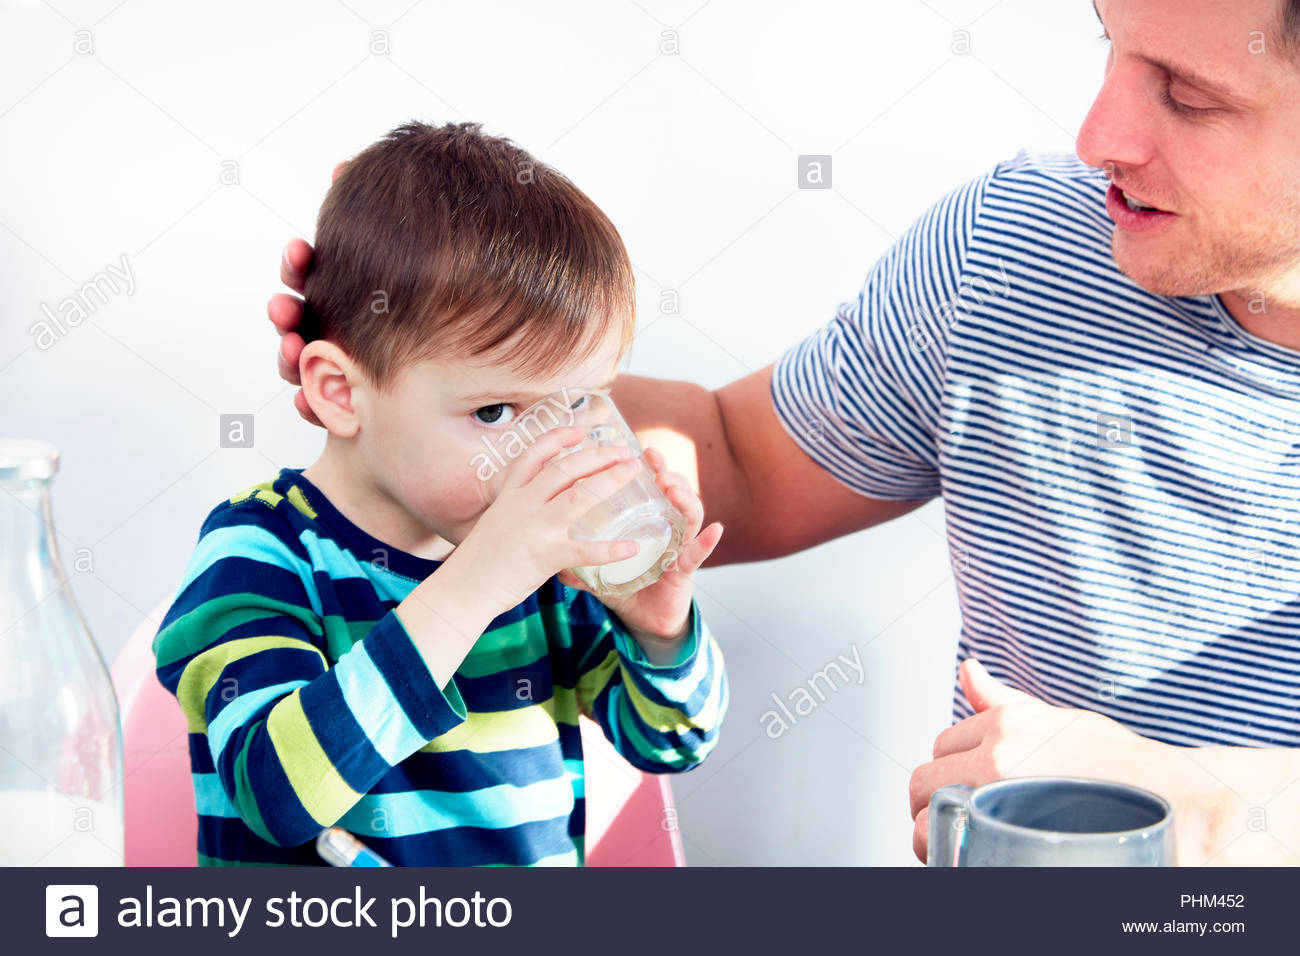 Father with son drinking milk - Stock Image